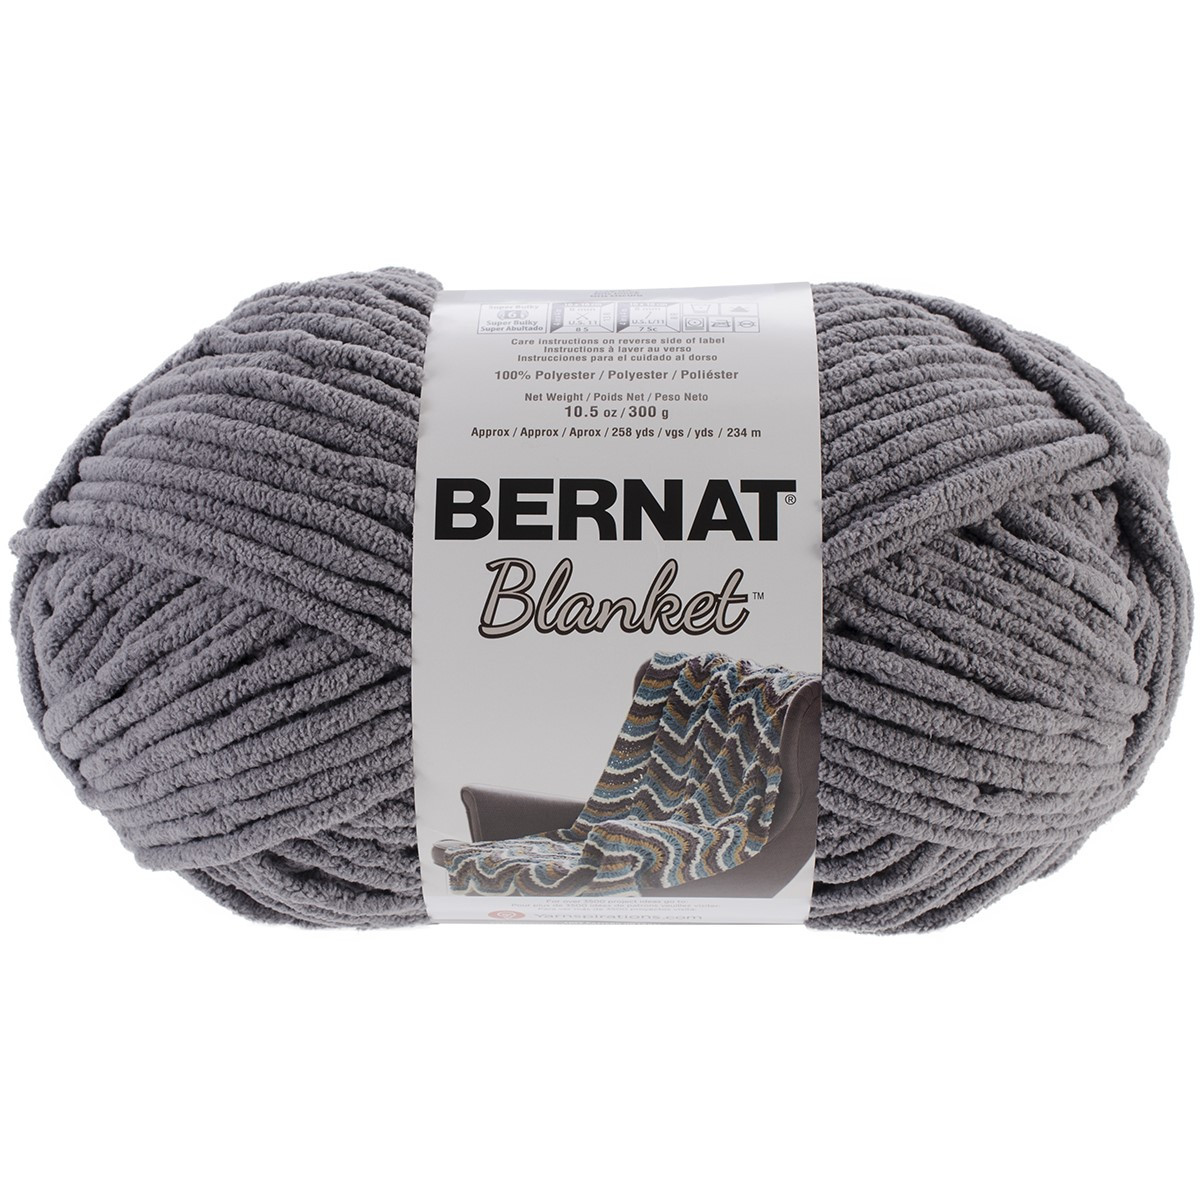 Bernat Blanket Big Ball Yarn Lovely Bernat Blanket Big Ball Yarn Dark Grey Of Innovative 41 Ideas Bernat Blanket Big Ball Yarn